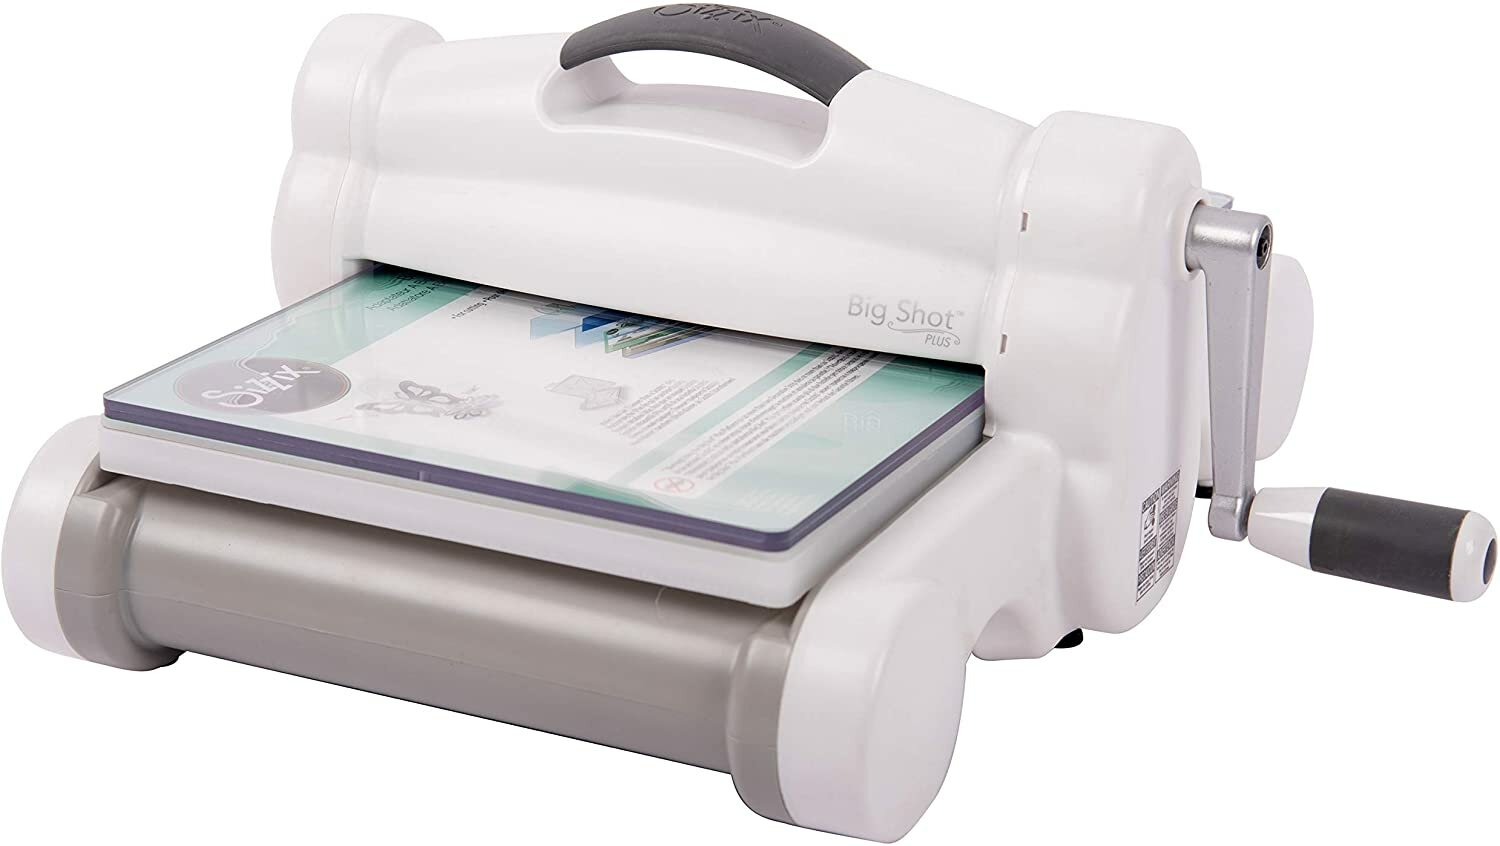 Sizzix 660340 Manual Die Cutting and Embossing, 9 in (21 cm) Opening, Big Shot Plus Machine Only